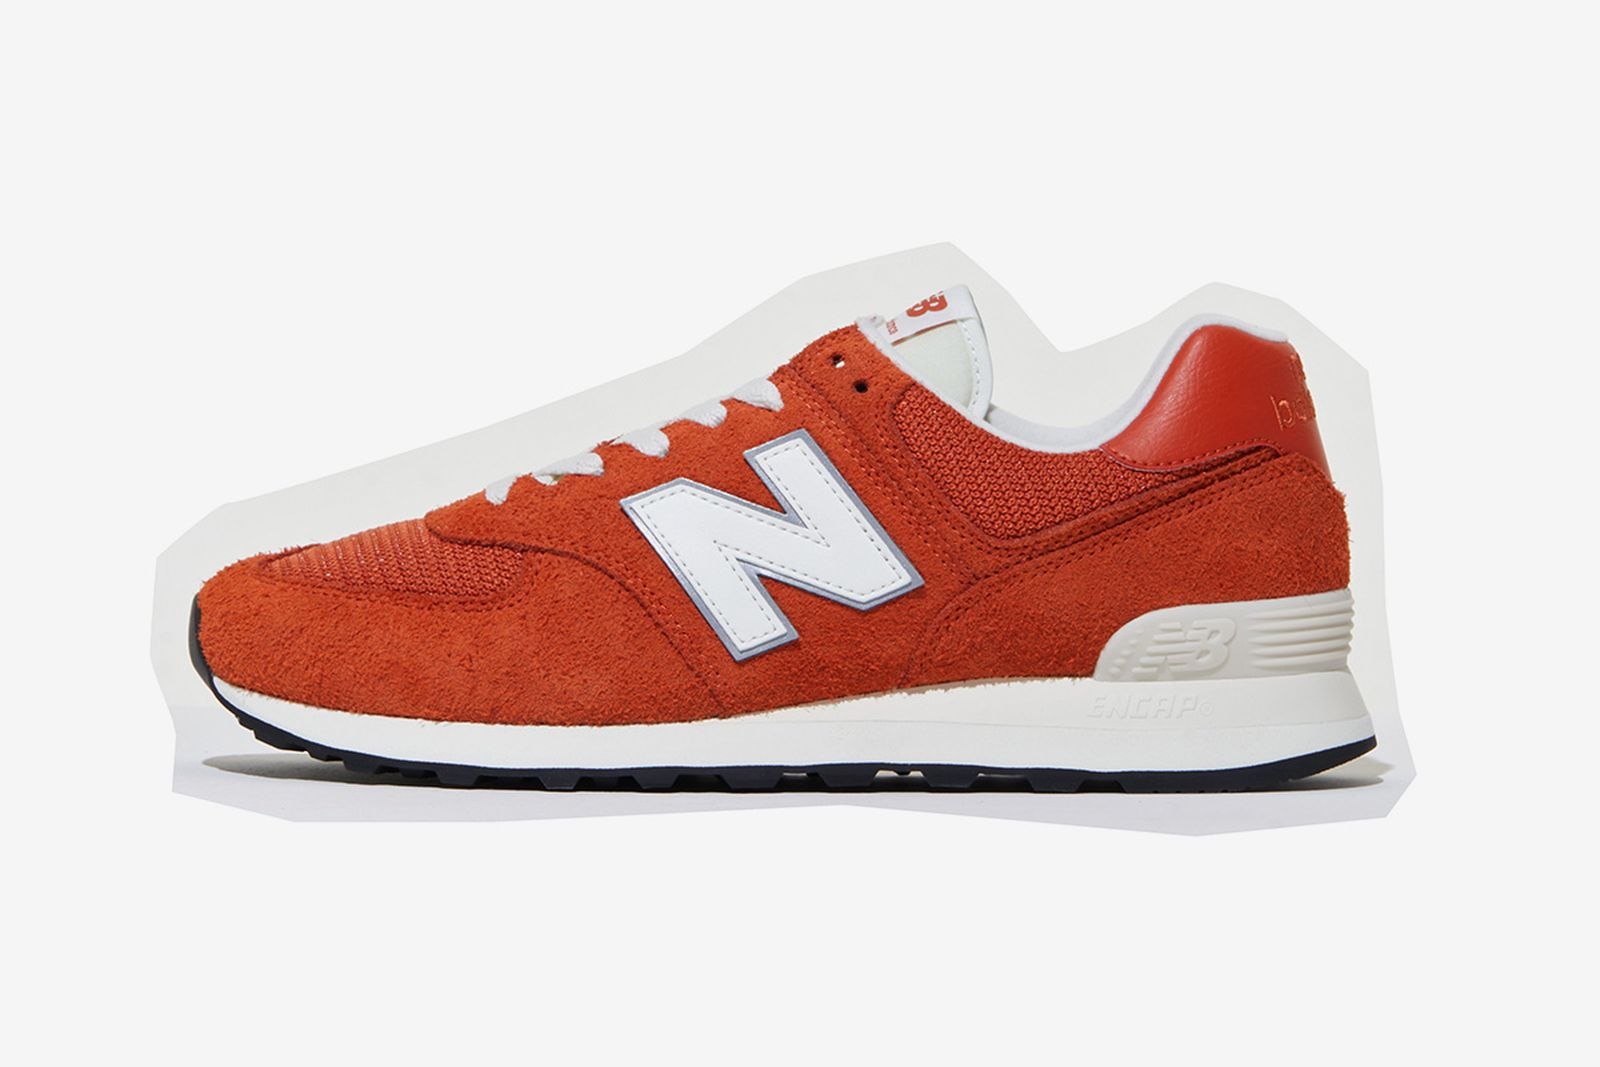 size-new-balance-550-orange-release-date-price-08